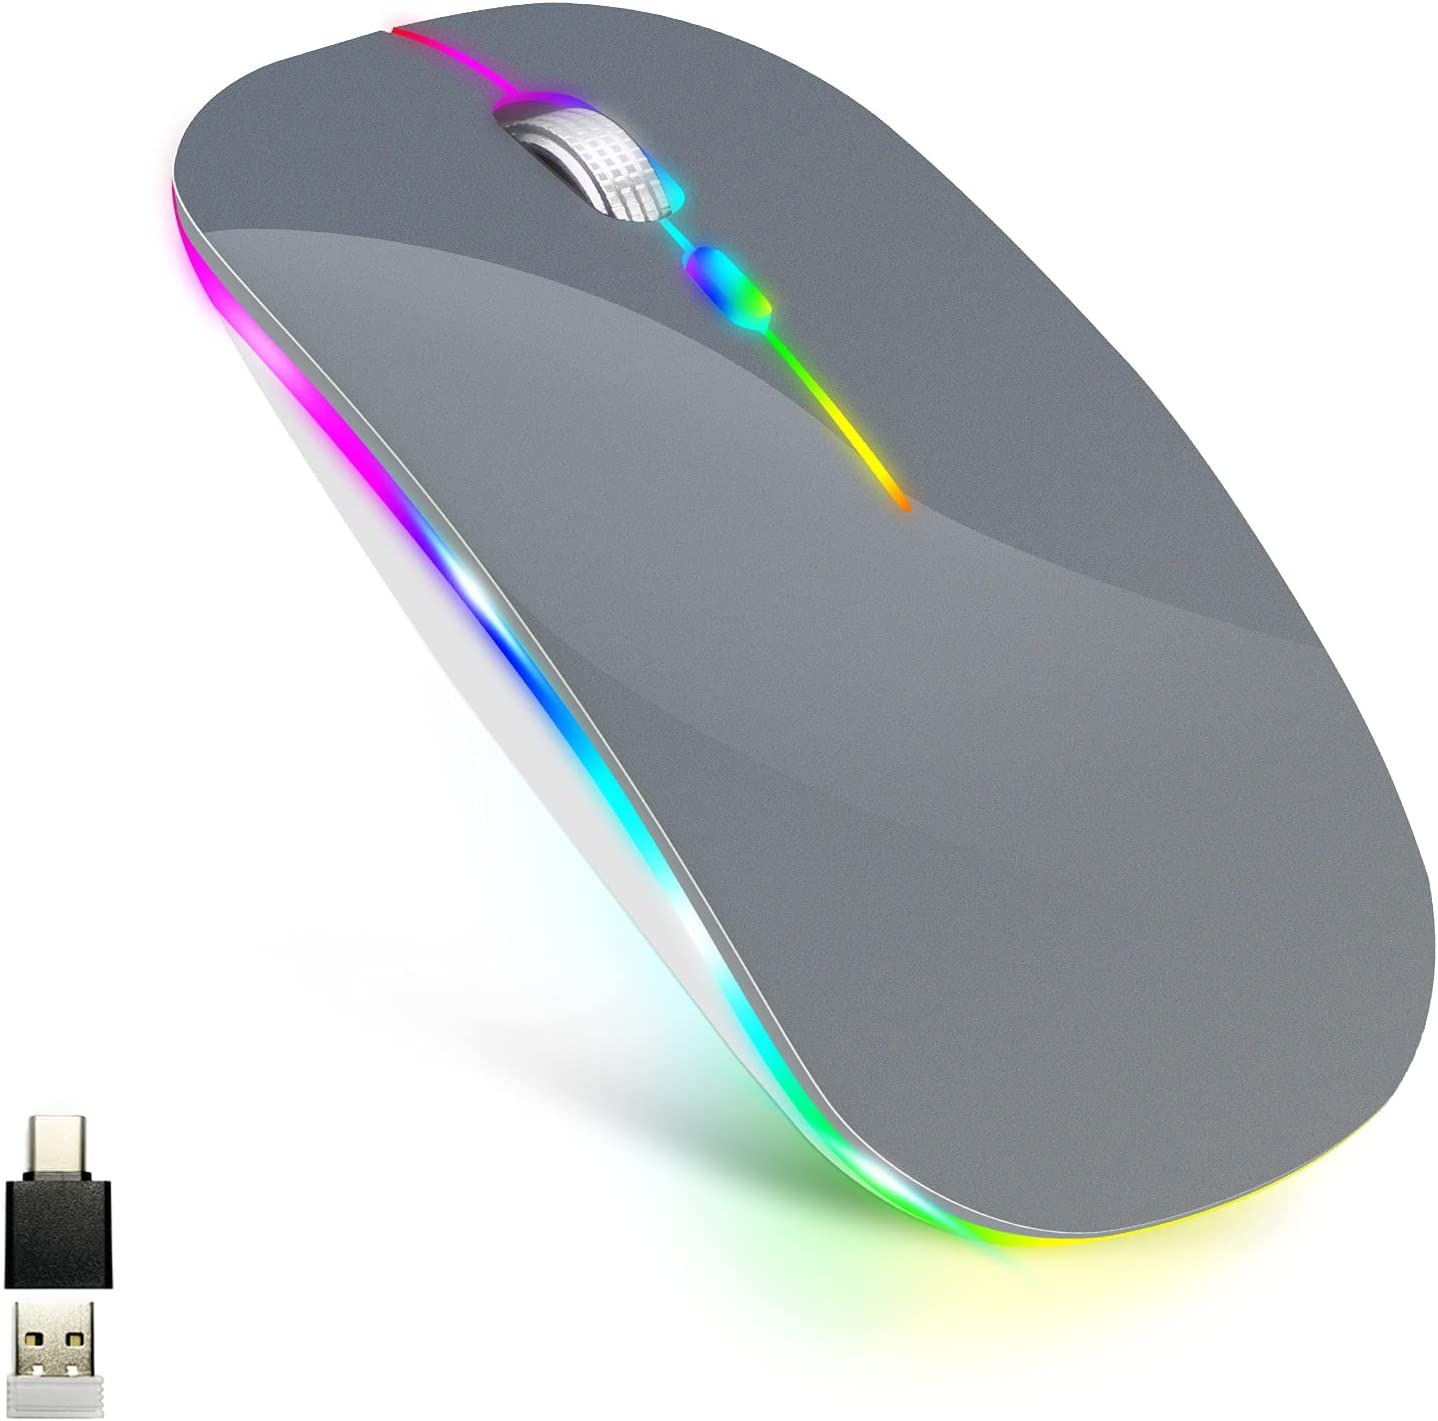 LED Wireless Mouse for MacBook air/MacBook pro/Laptops/Windows/Mac,Rechargeable Slim Silent Mouse 2.4G USB/Type-c Receiver,Rechargeable Wireless Mouse for MacBook/air/pro/mac/pc(Grey)